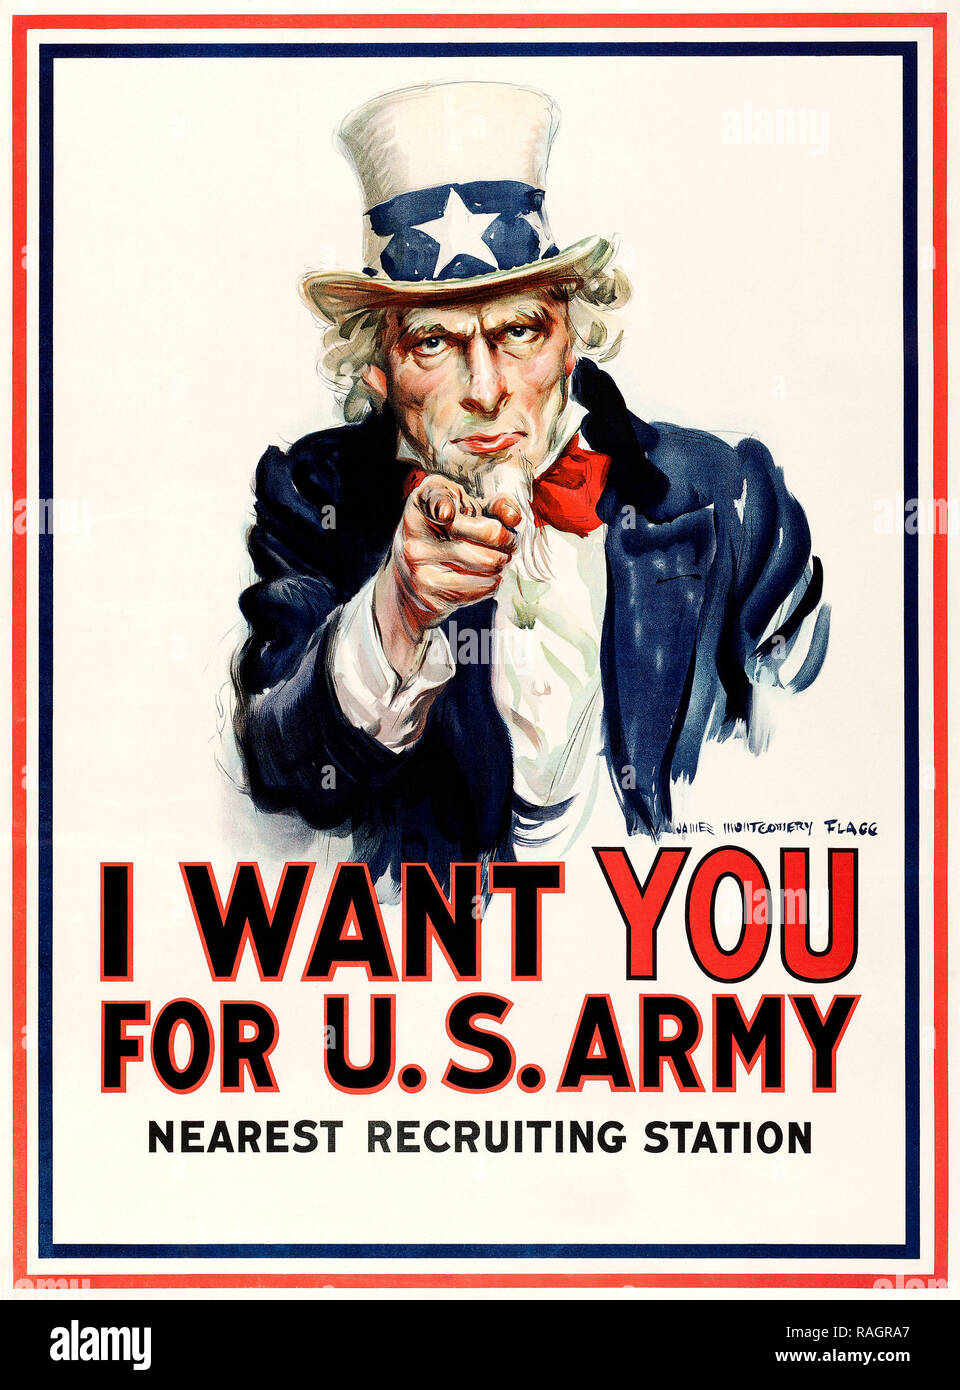 I Want You for U.S. Army recruiting poster by James Montgomery Flagg - Stock Image